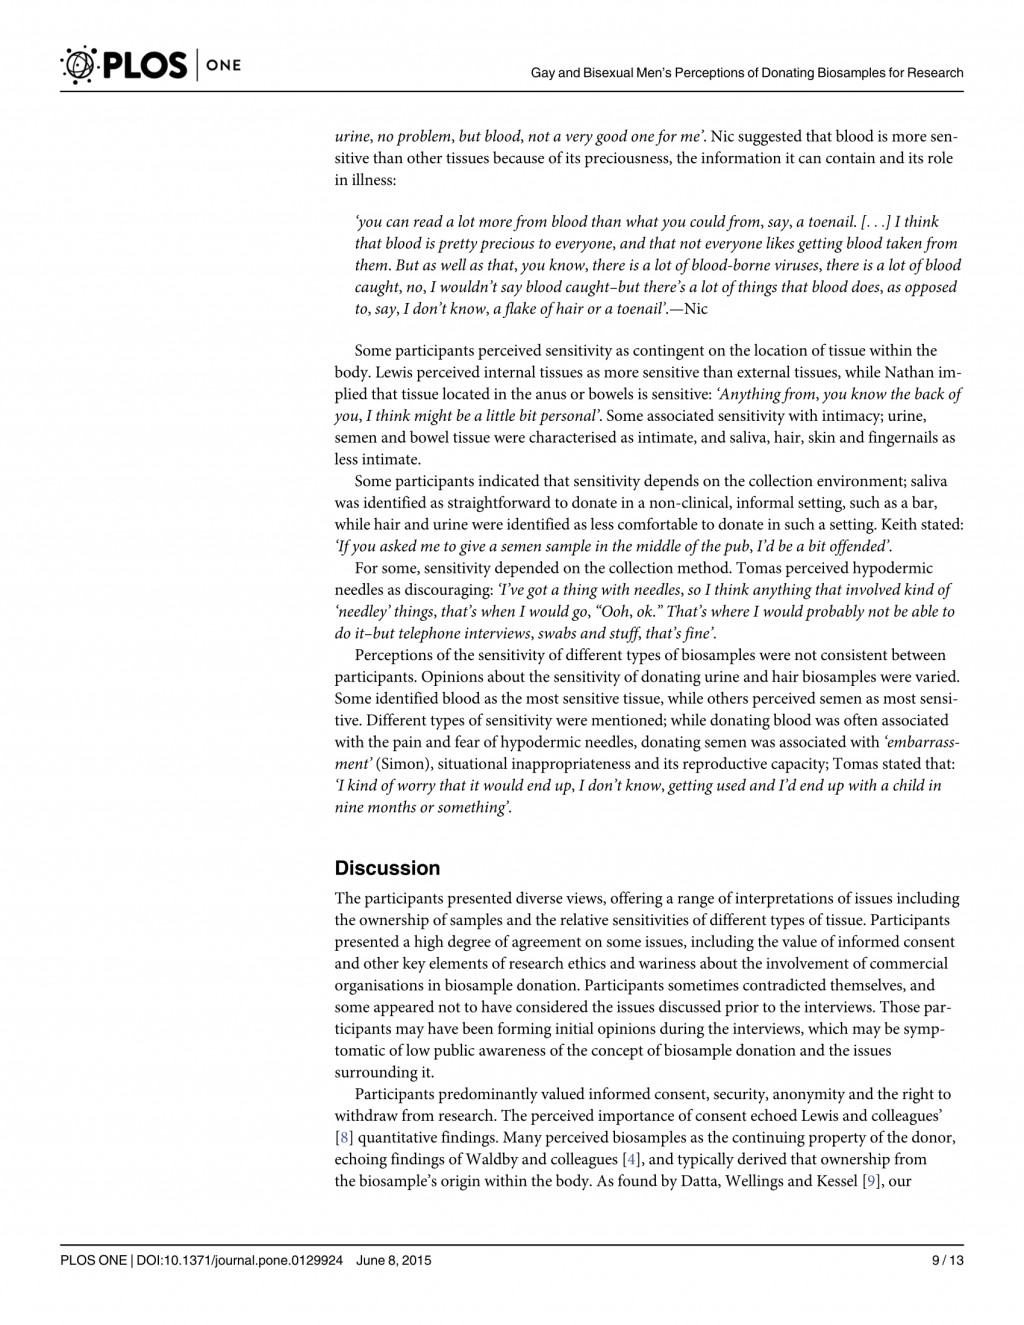 007 Example Of Materials And Methods Section Research Paper Wonderful A Large